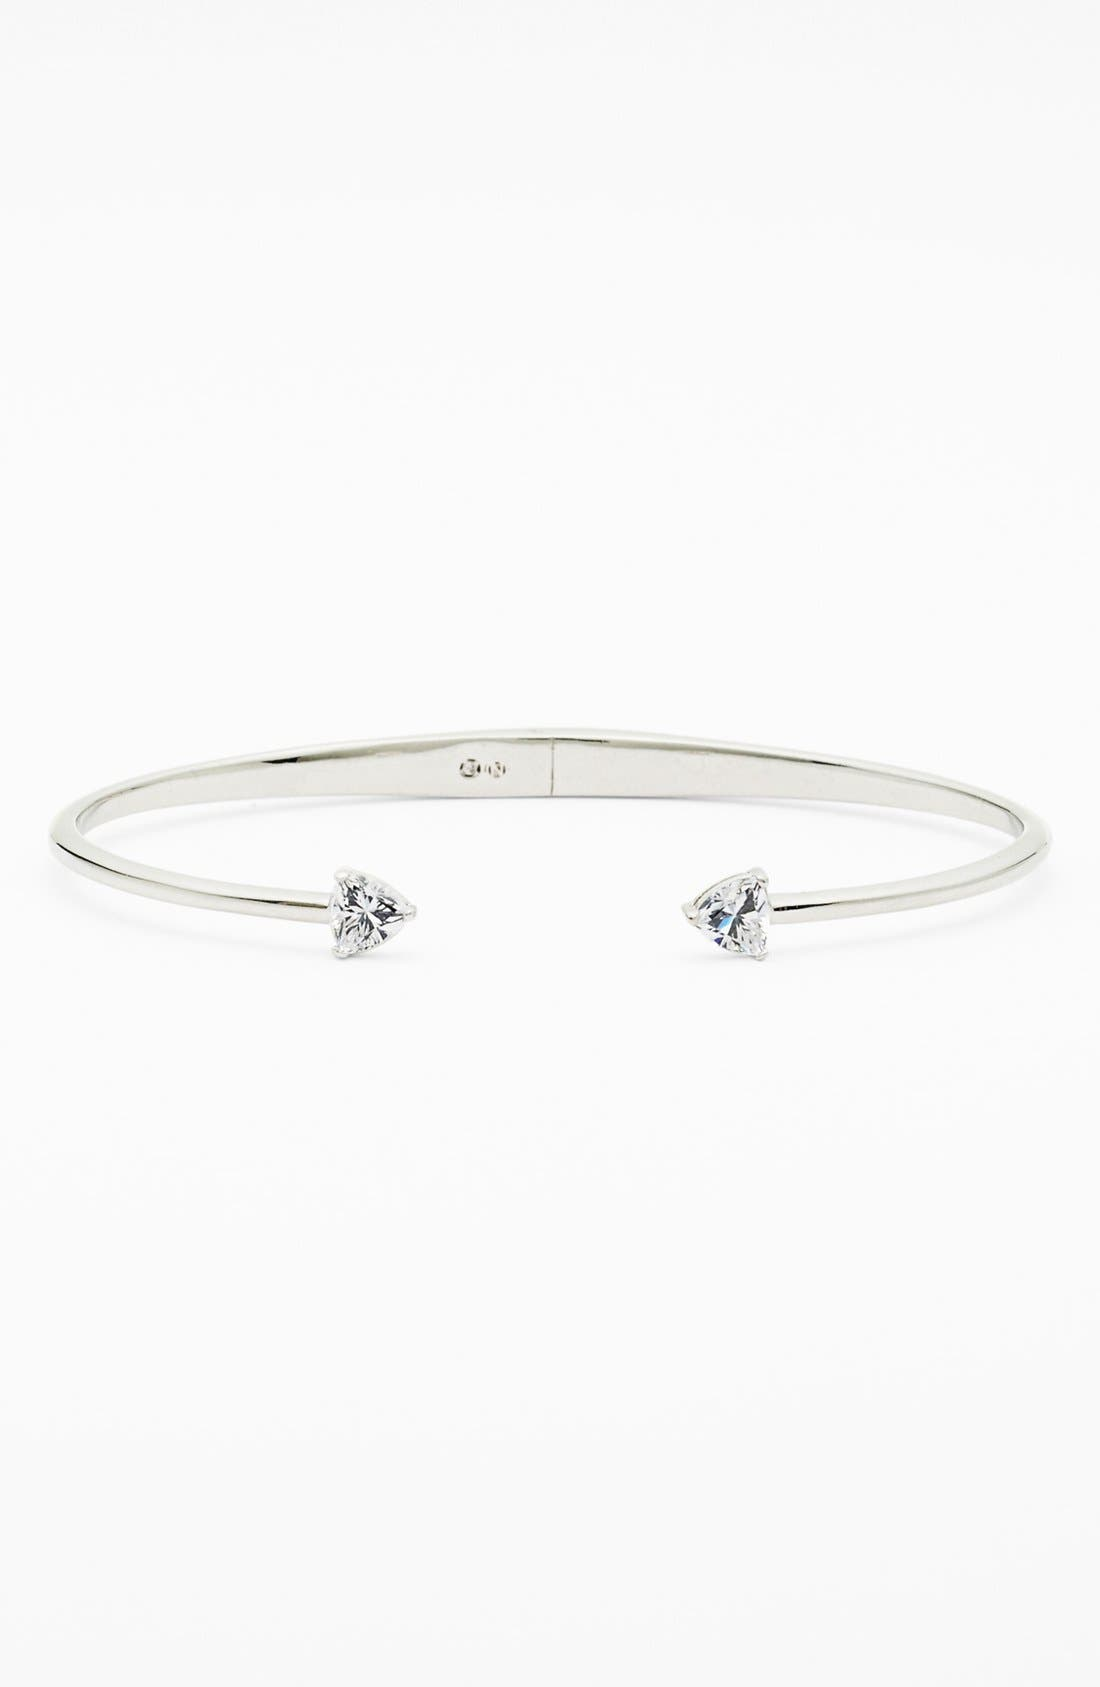 Main Image - Nadri Arrow Cubic Zirconia Station Cuff